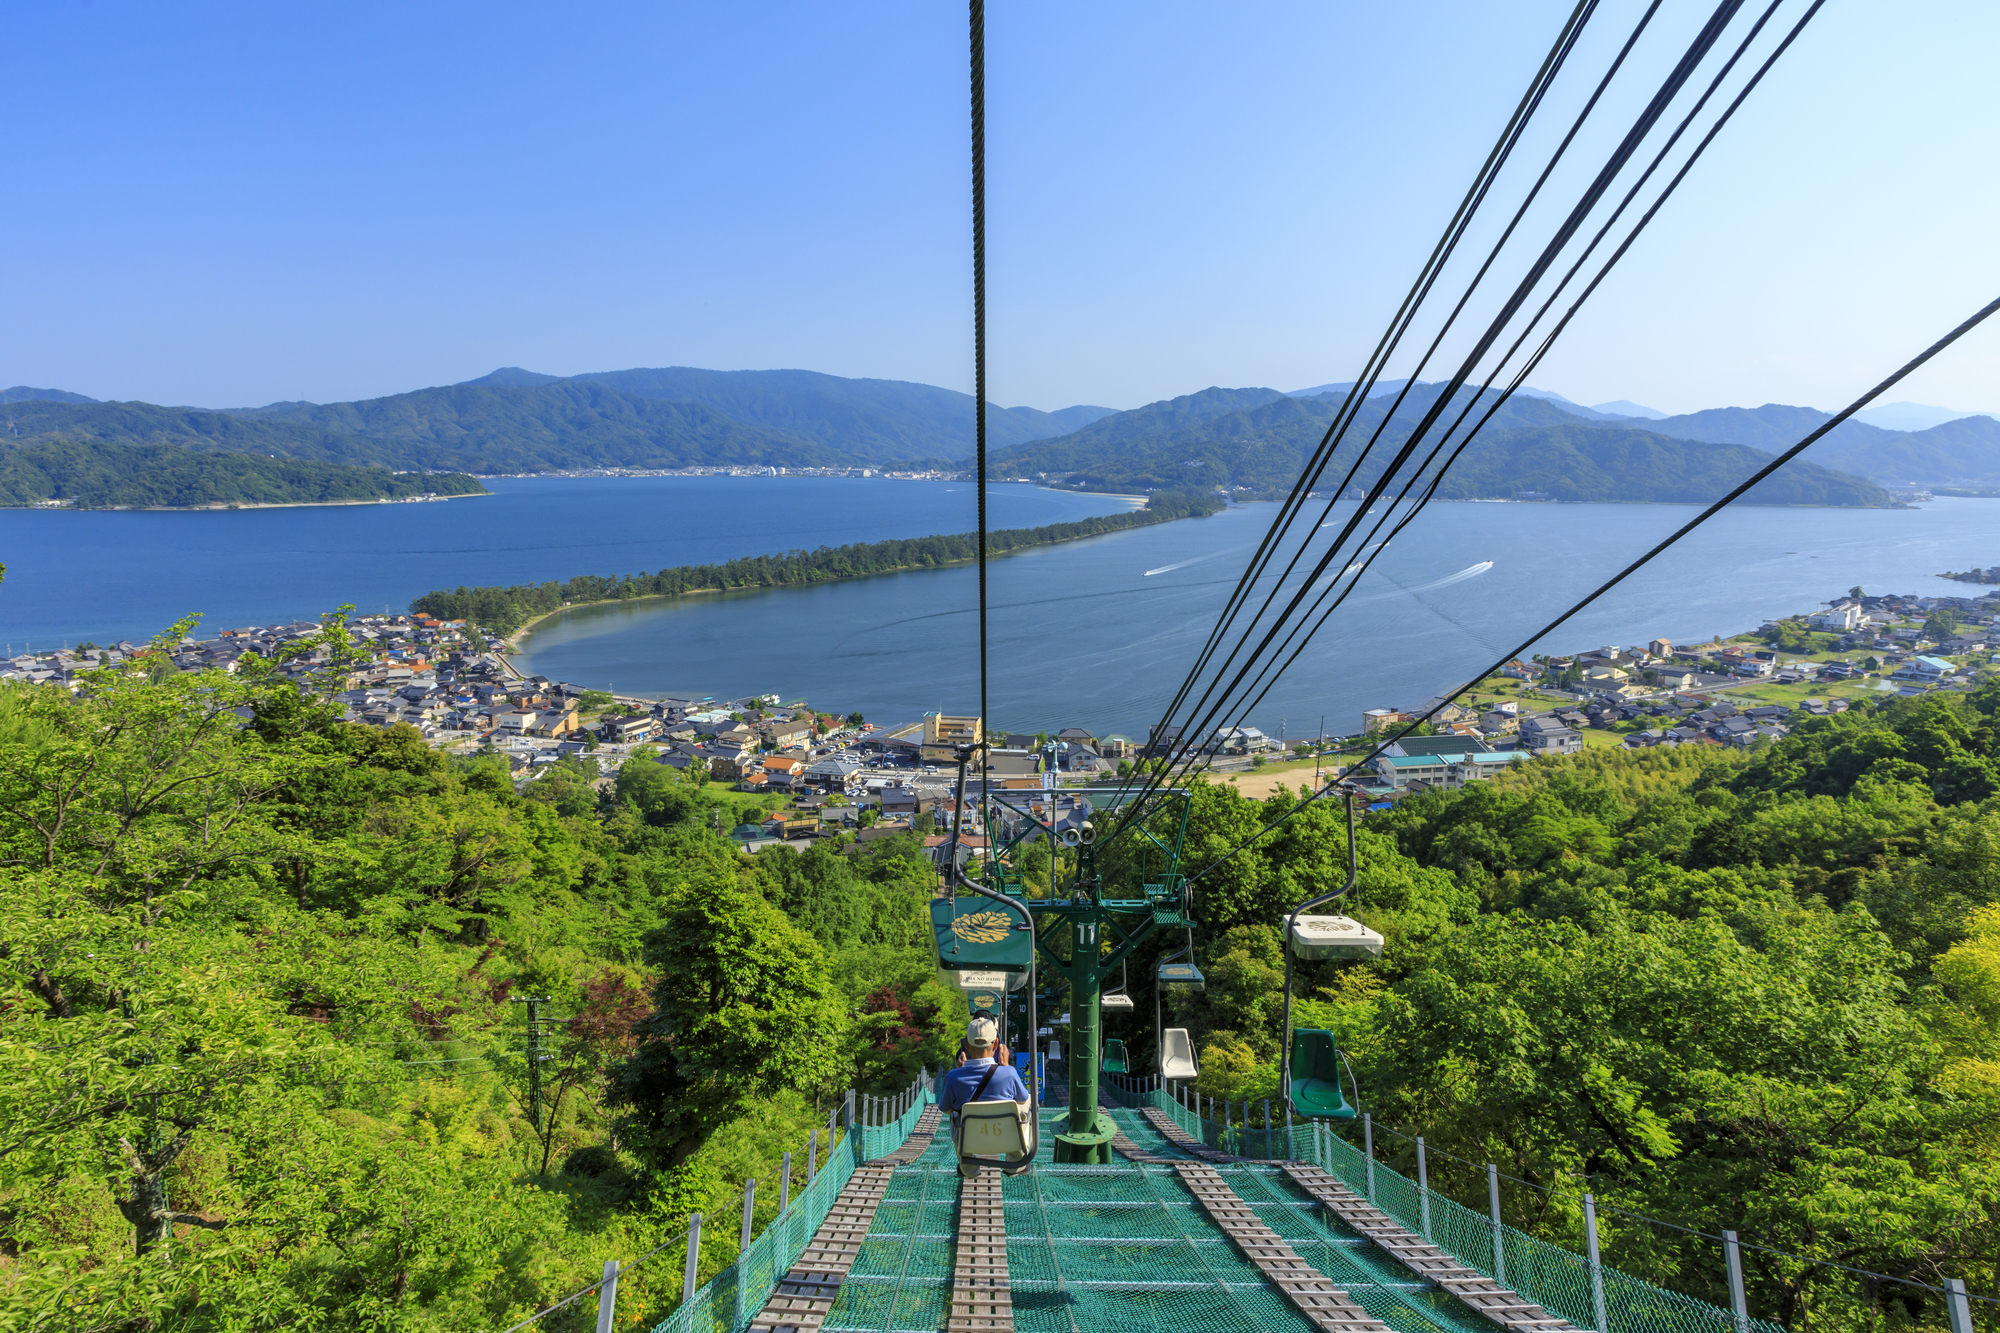 Trip to Amanohashidate area (Northern Kyoto)